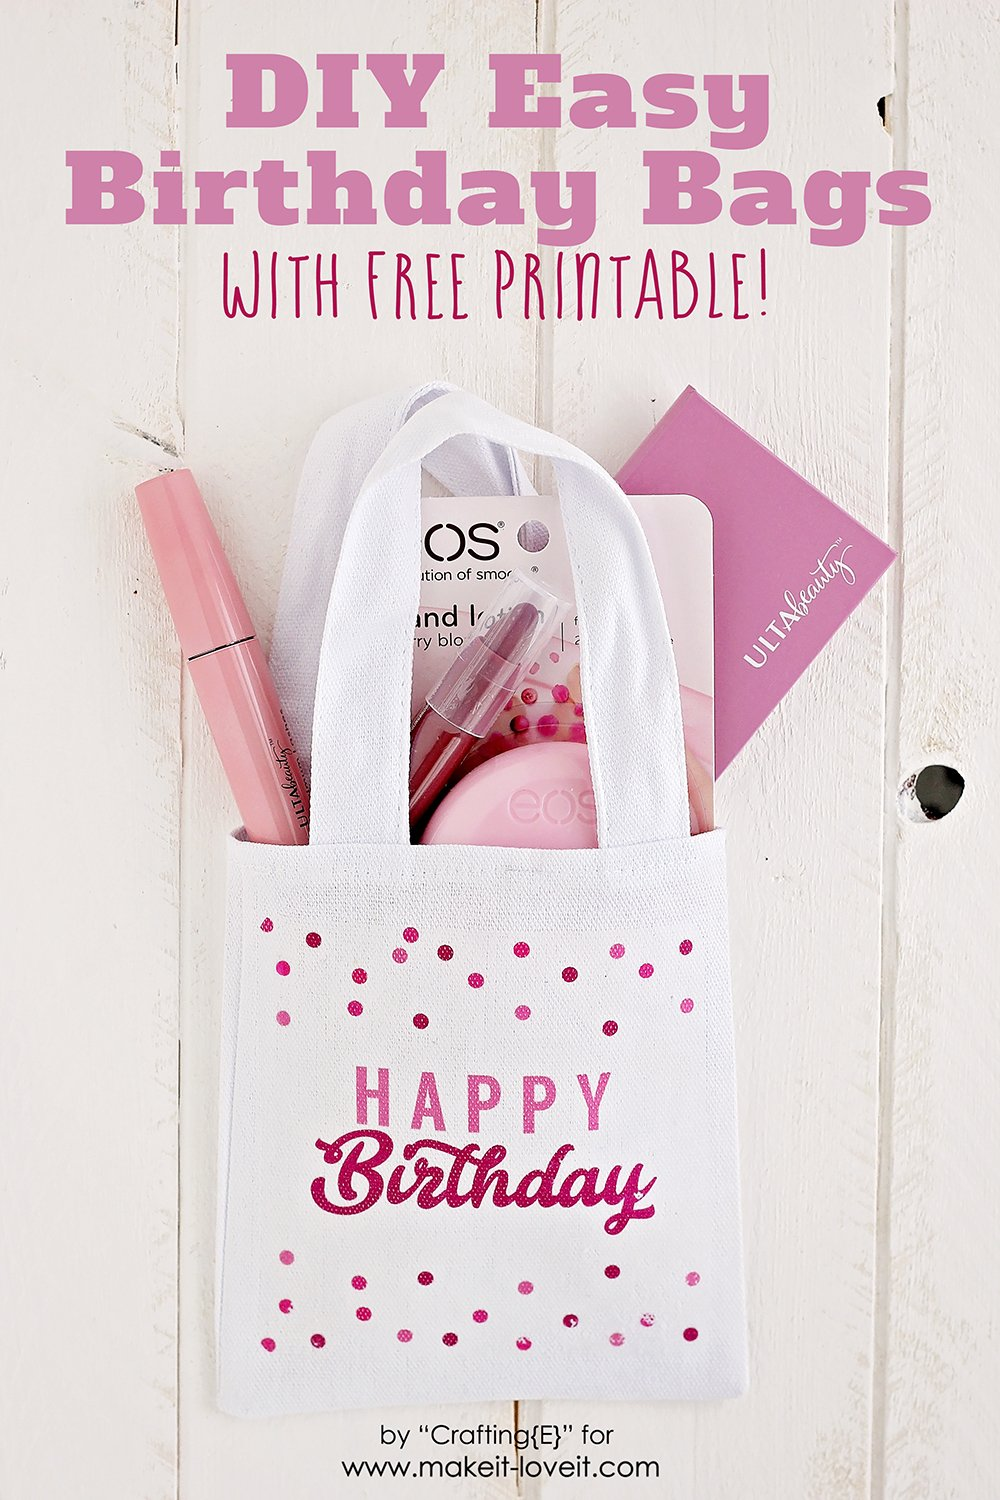 Easy diy birthday bags with free printable 9